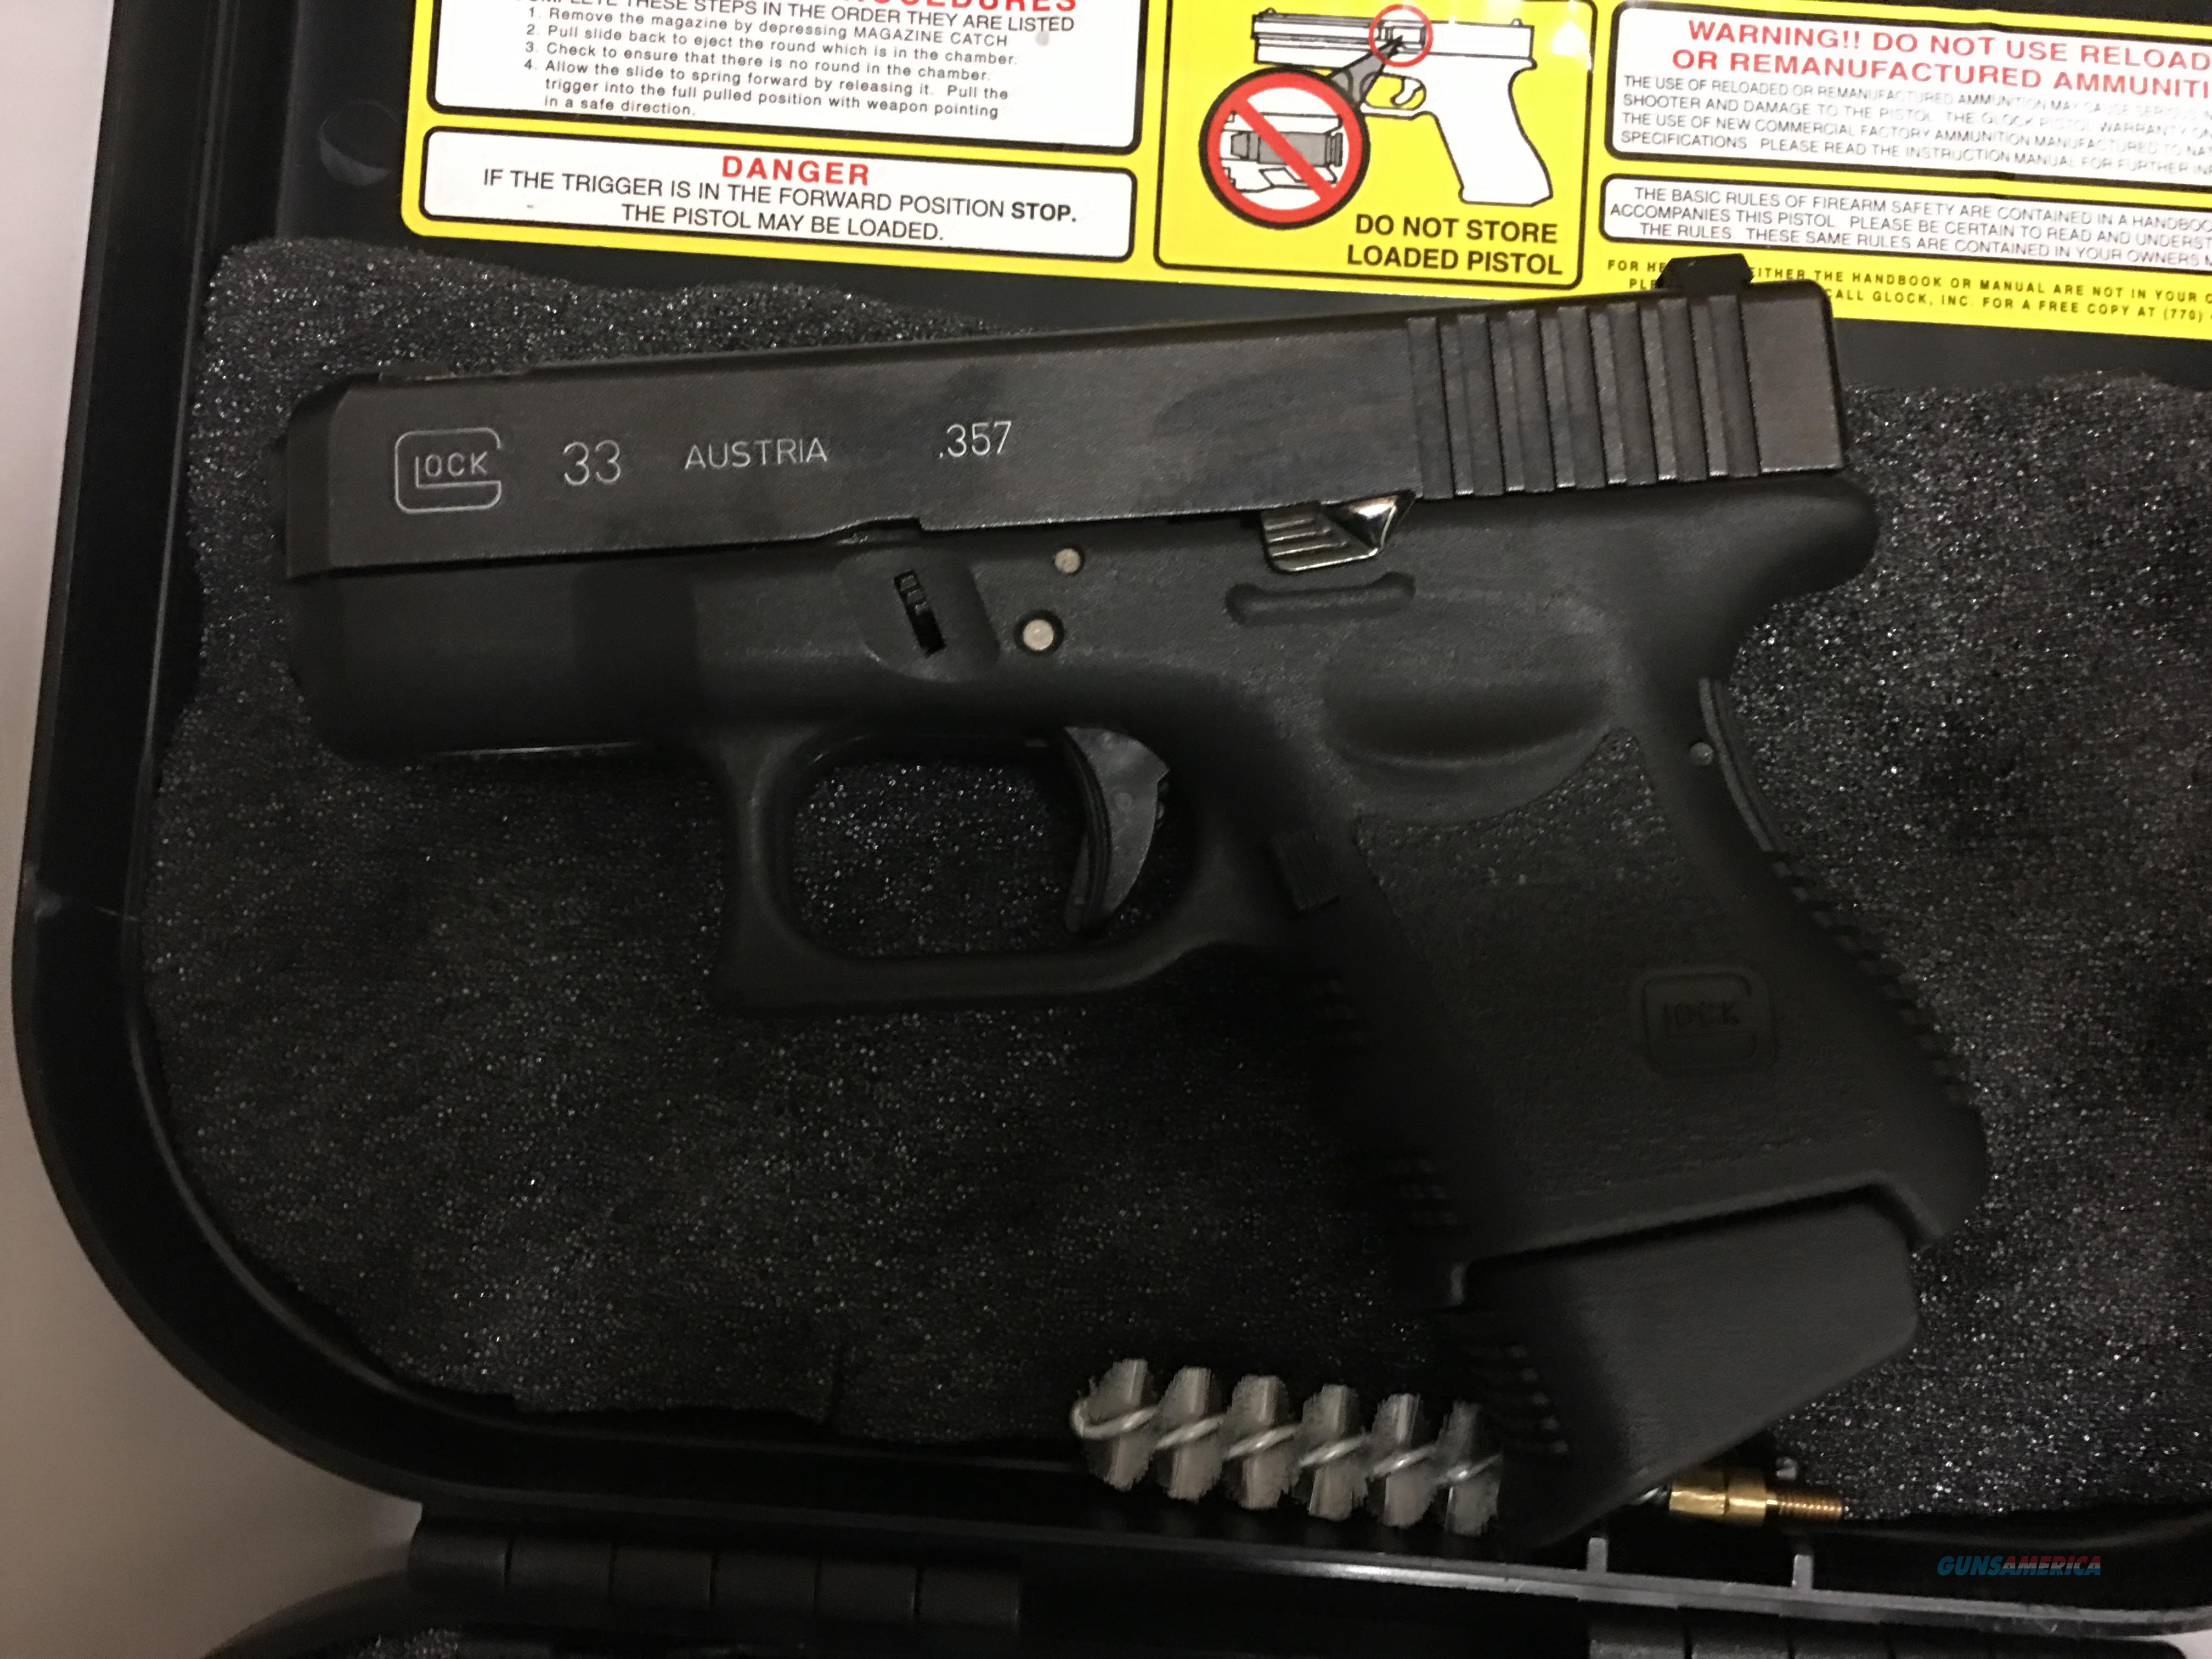 G33 custom ported, night sights, 3lb trigger, extended mag release  Guns > Pistols > Glock Pistols > 31/32/33